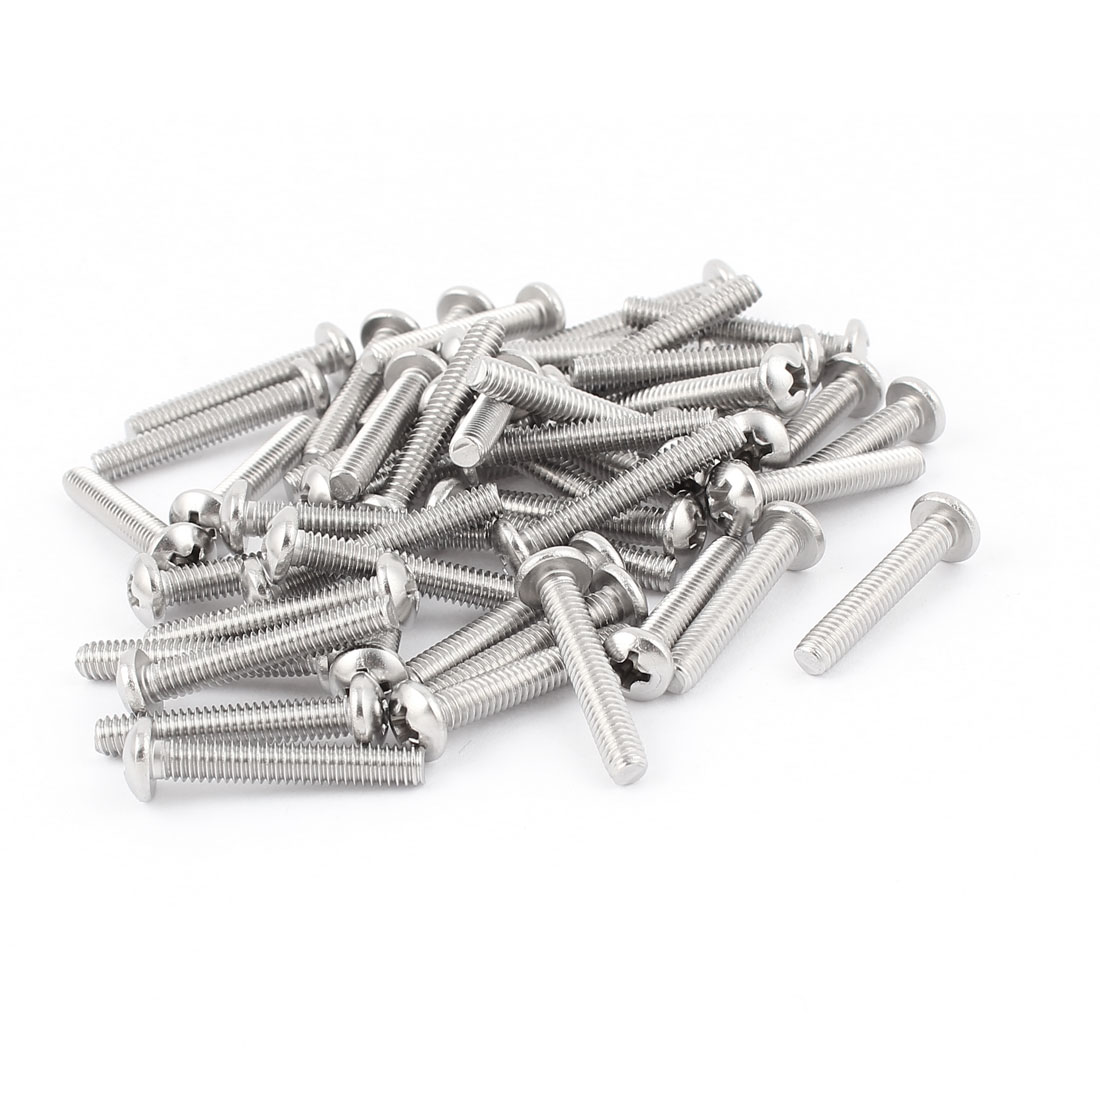 50pcs M4x25mm Stainless Steel Truss Head Bolts Phillips Machine Screw Fasteners